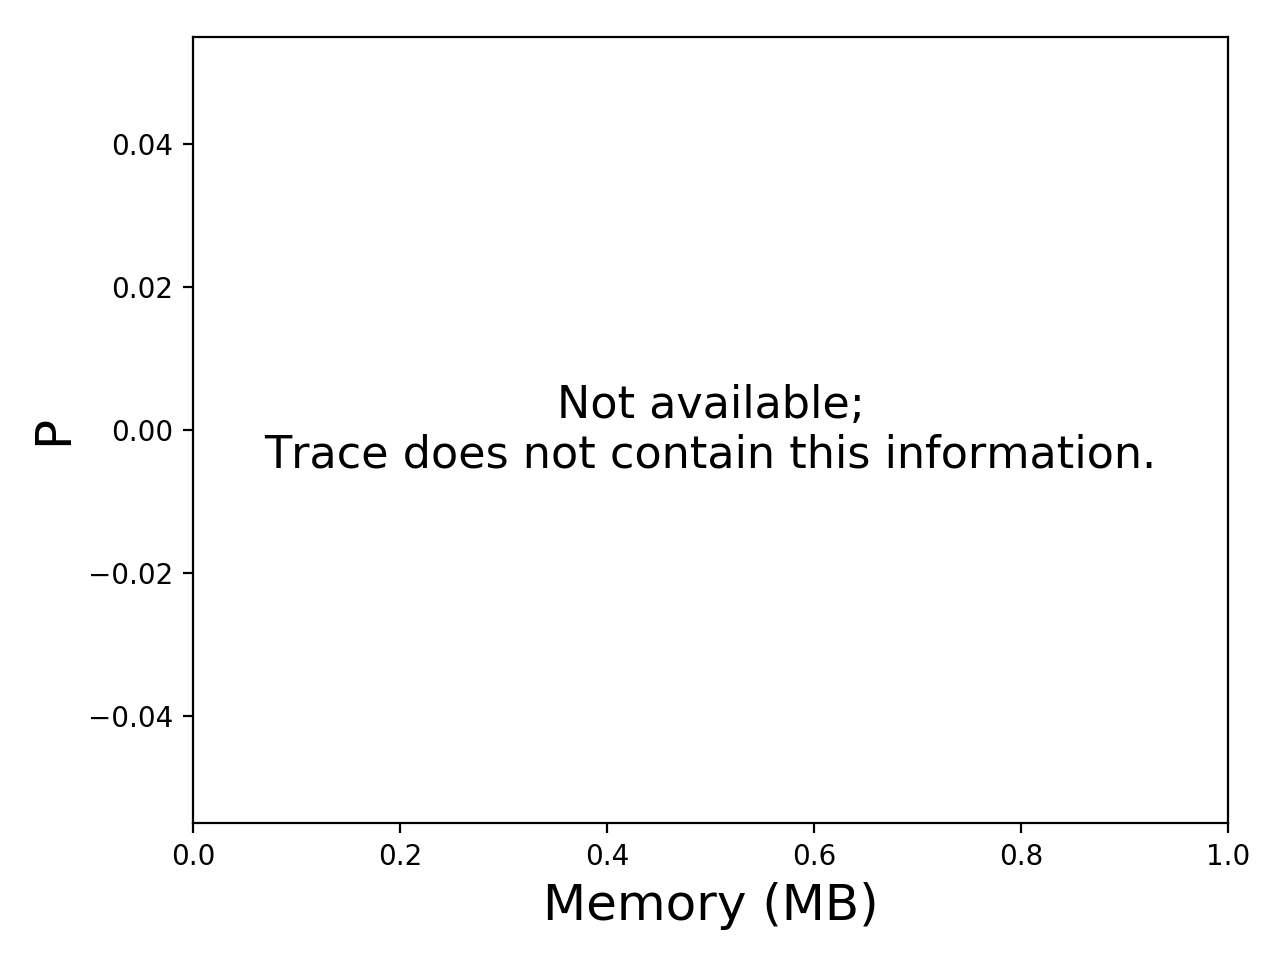 Task memory consumption graph for the Pegasus_P7 trace.